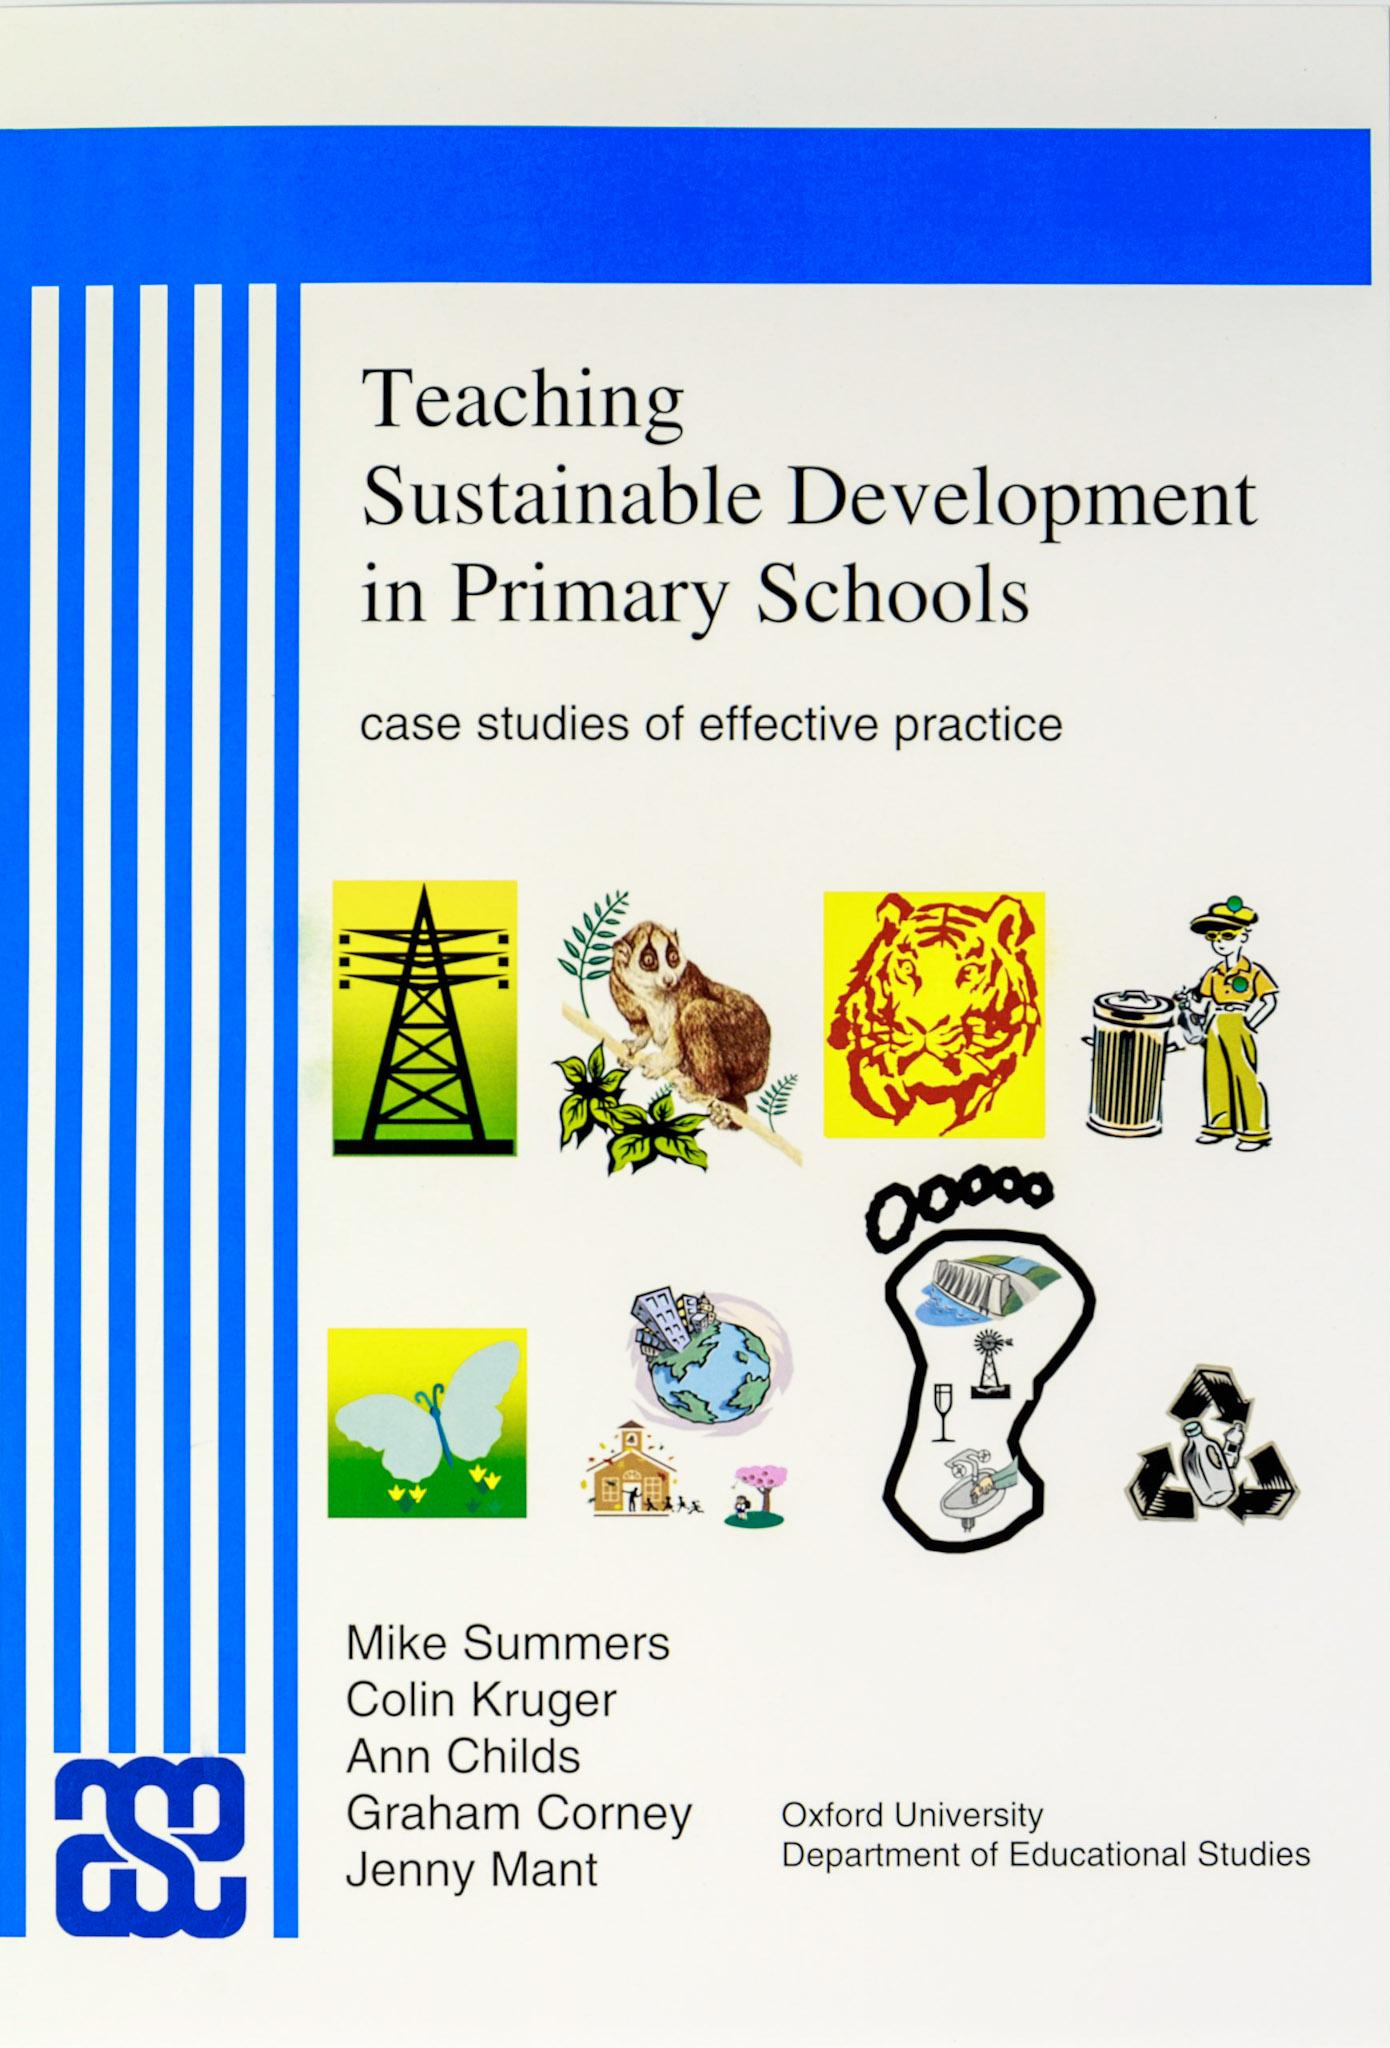 PSTS: Teaching Sustainable Development in Primary Schools